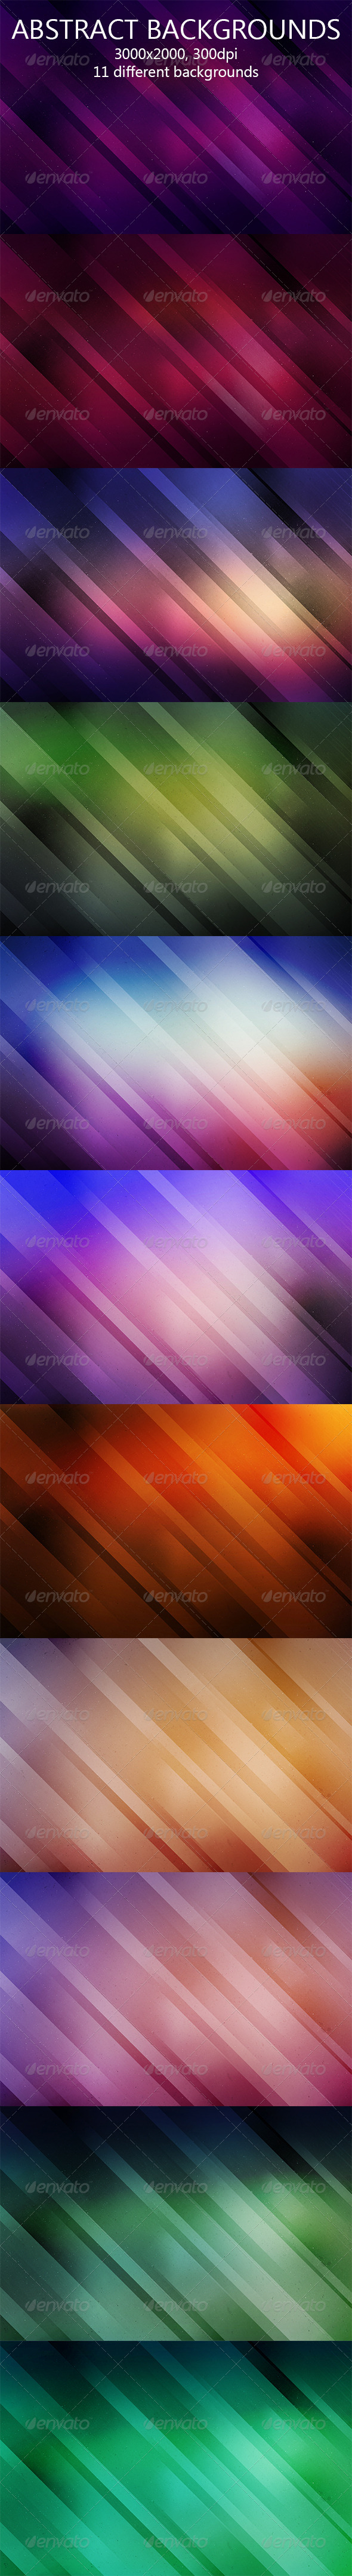 GraphicRiver Abstract Backgrounds 8081989